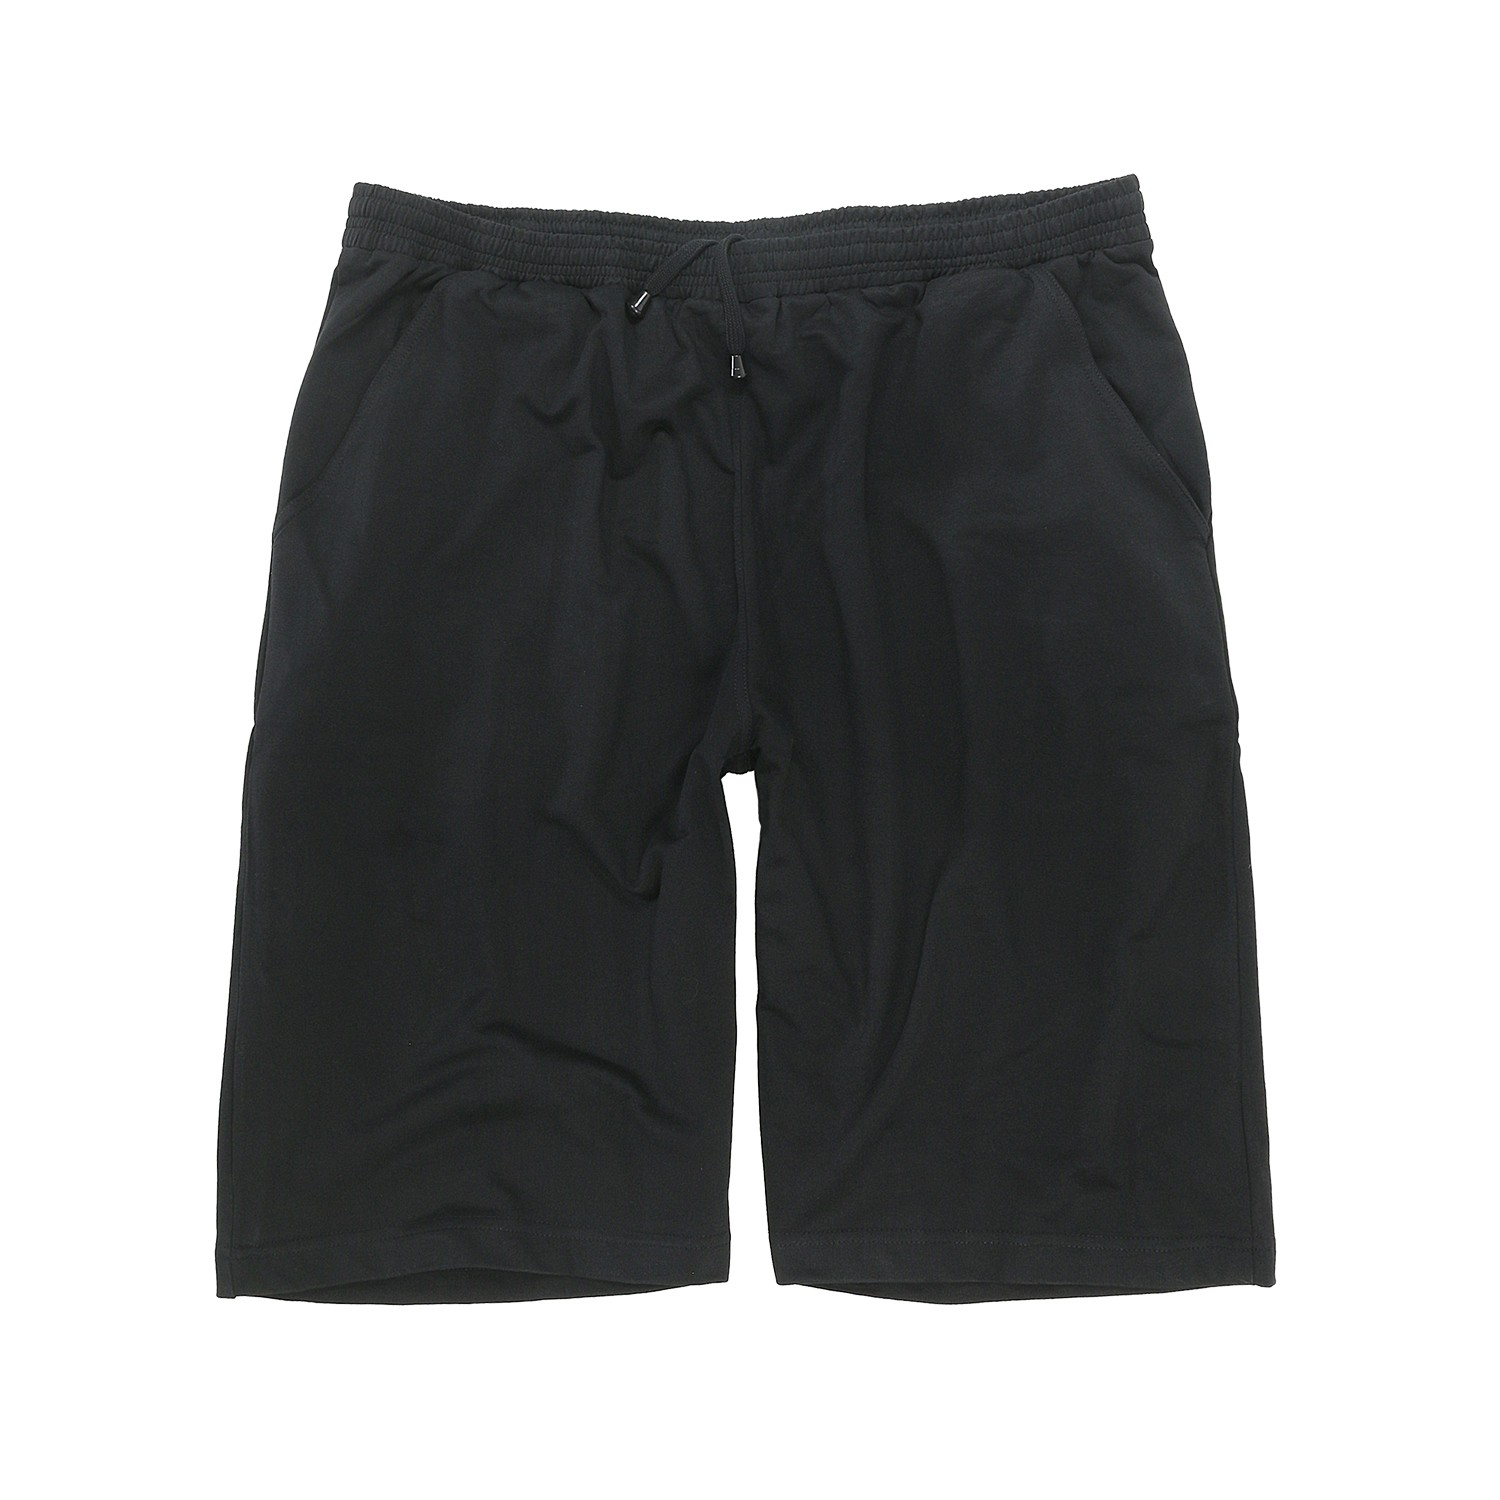 Detail Image to Black short jogging trousers up to 12XL by BigBasics